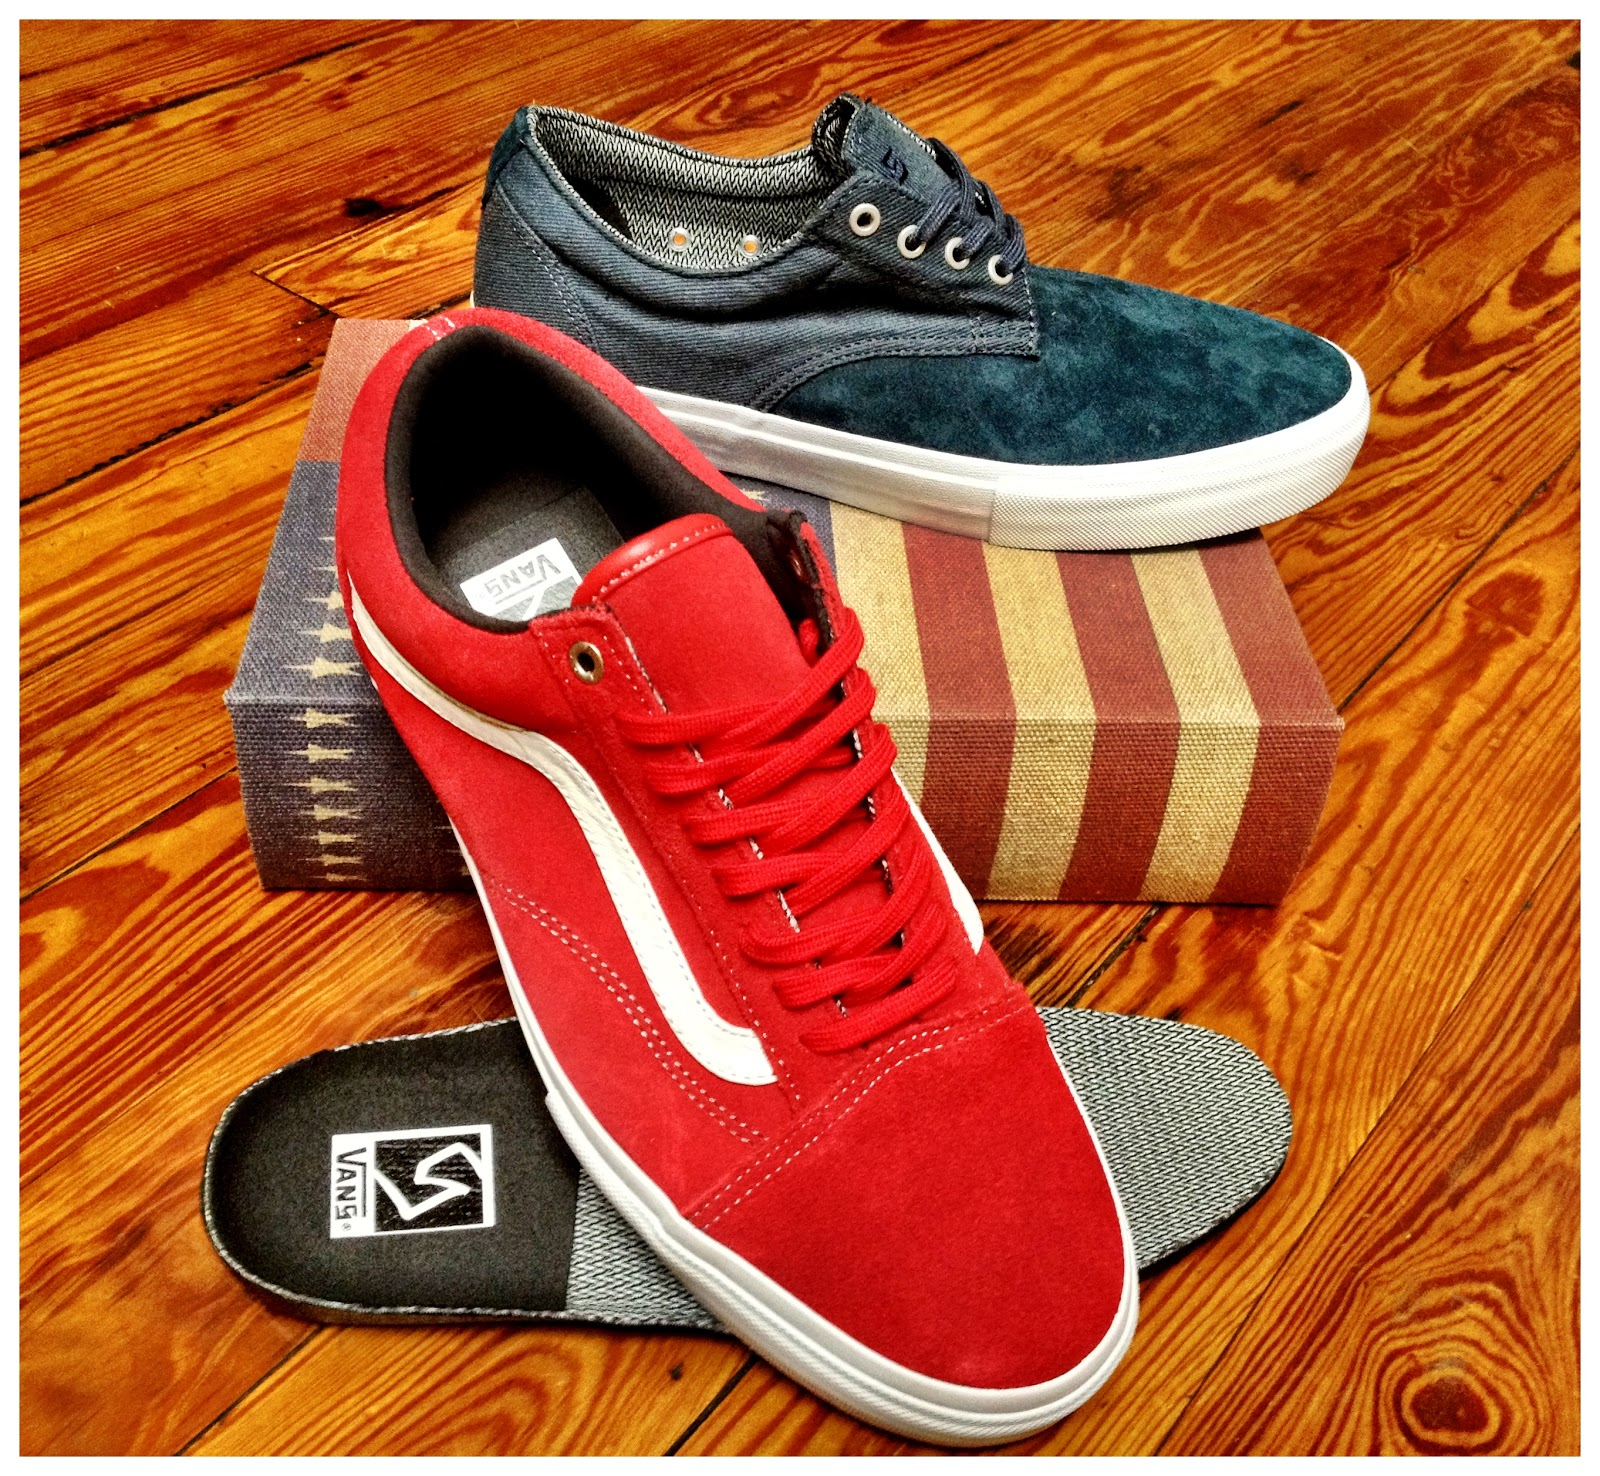 800e797a23 RELIEF SKATE SUPPLY  NEW VANS SYNDICATE OLD SKOOL AND DERBY